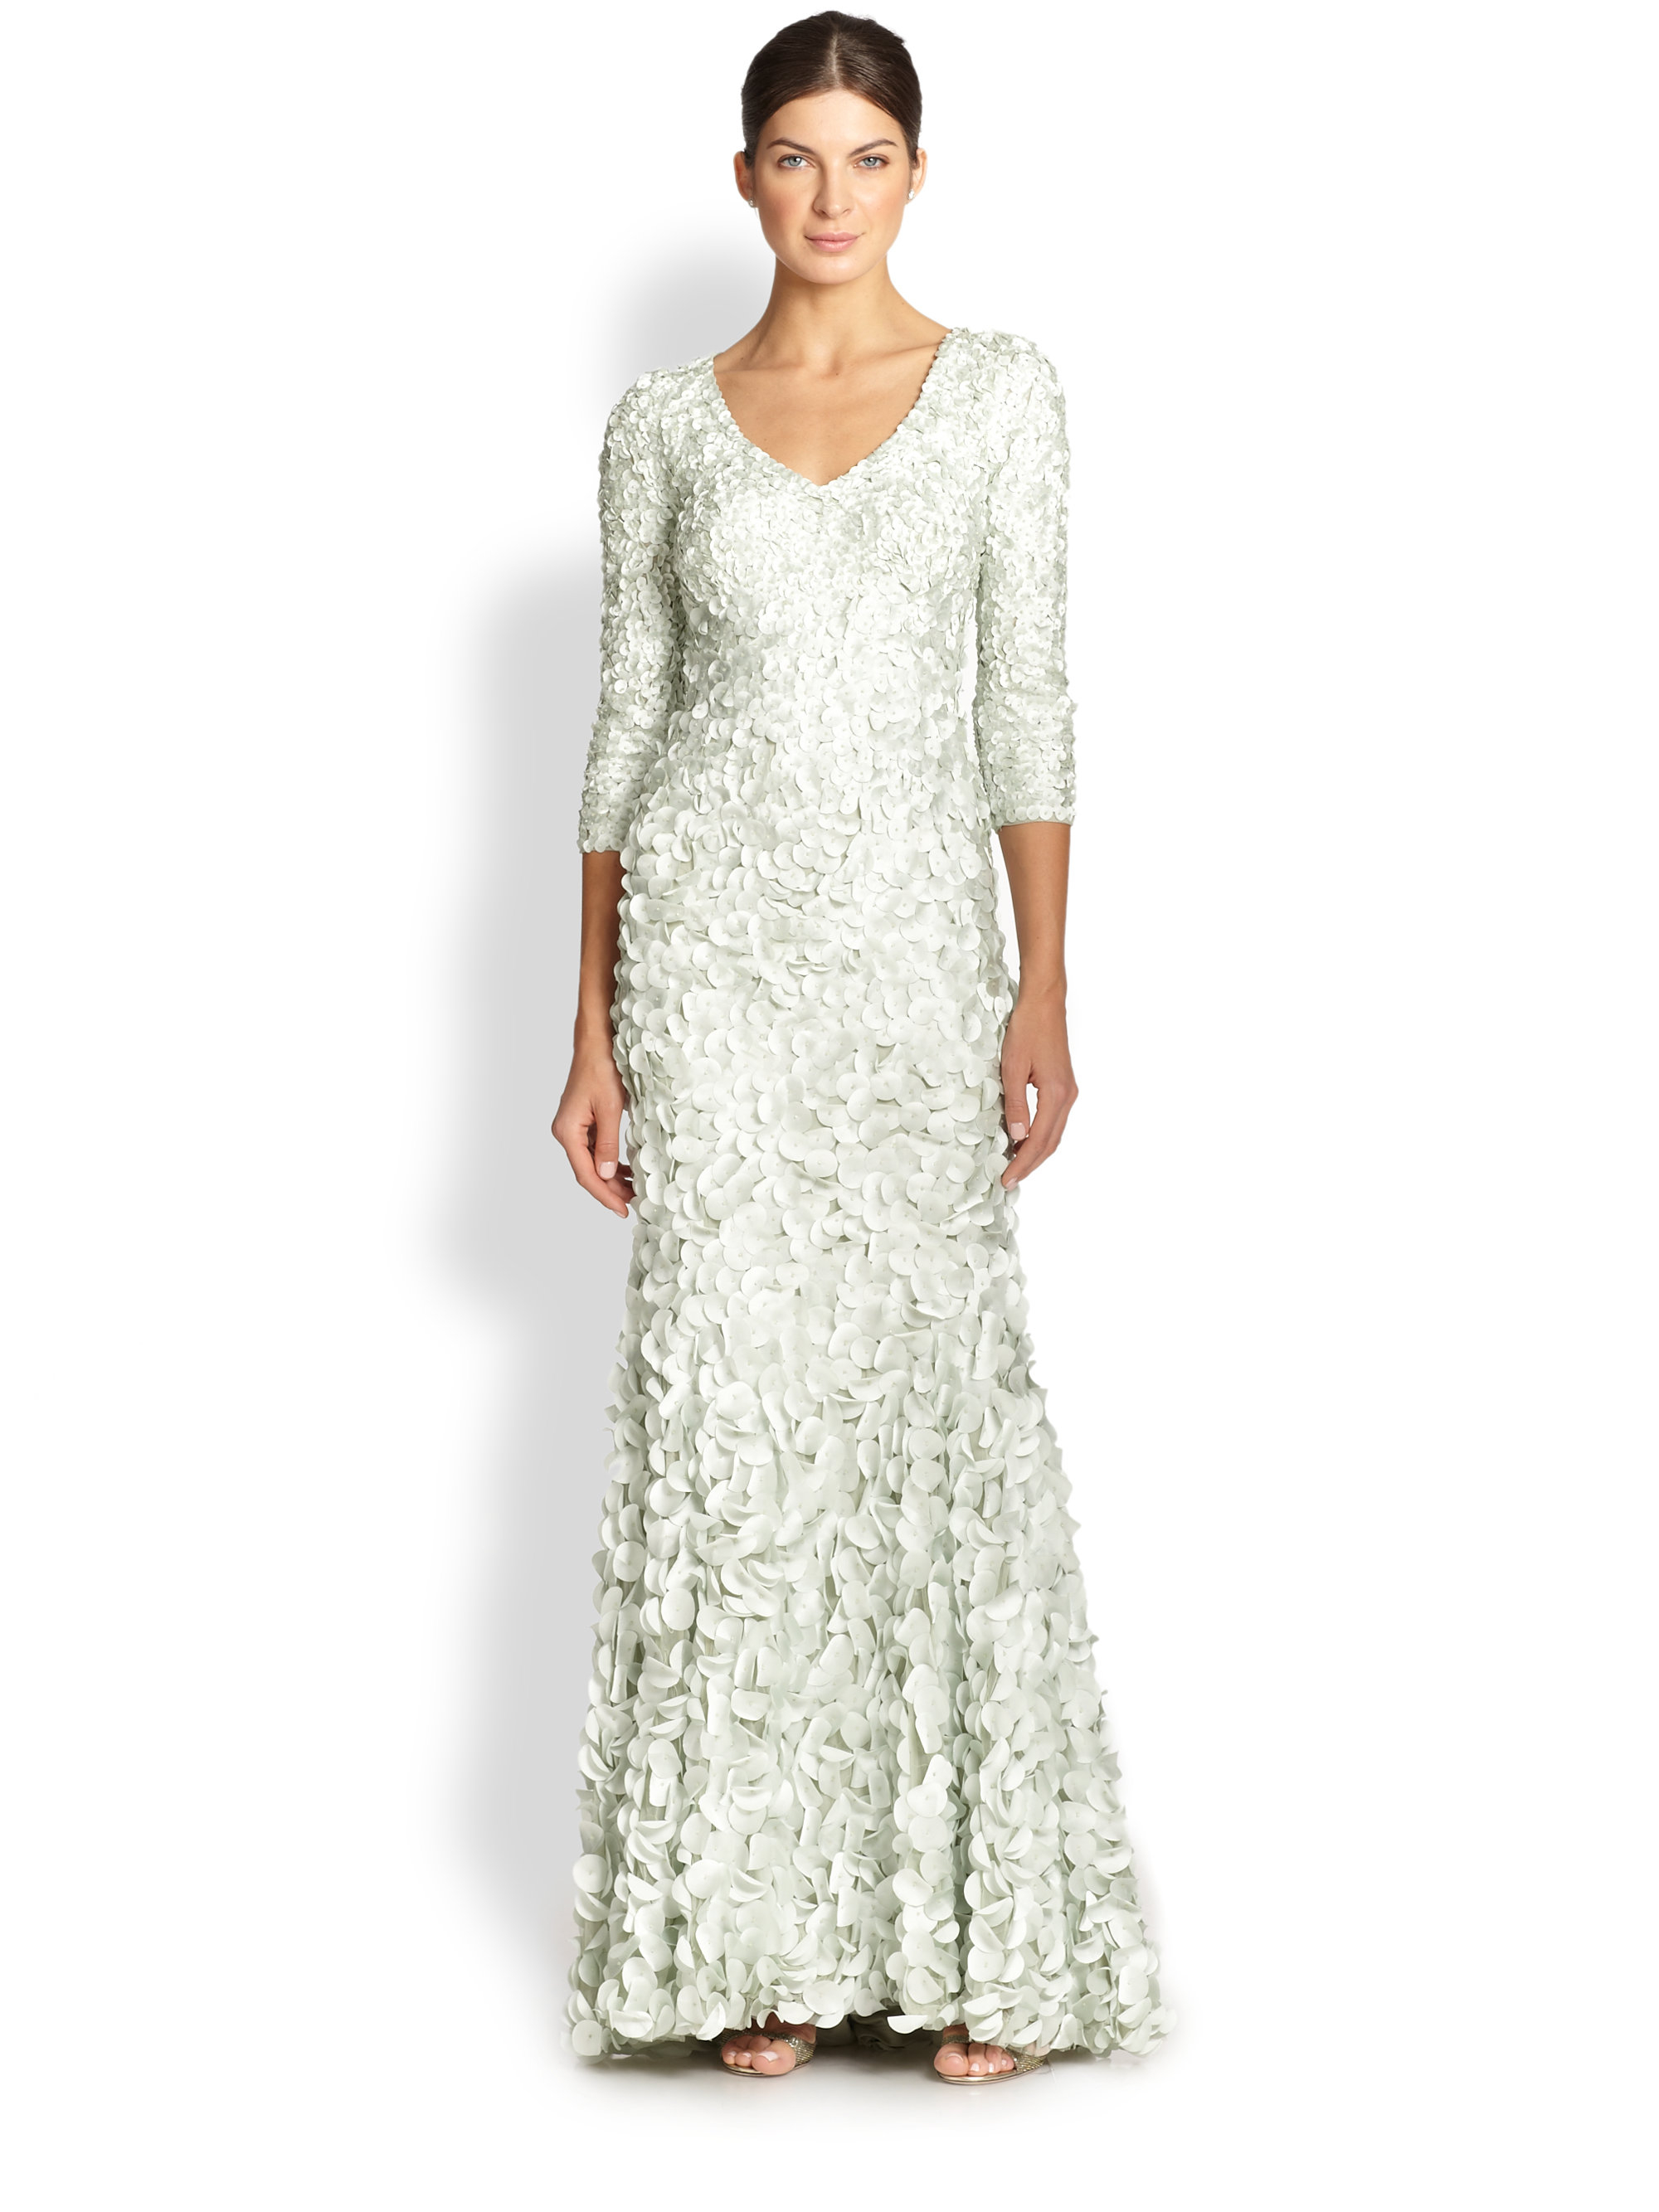 Lyst - Theia Petal Three-Quarter-Sleeve Gown in Green